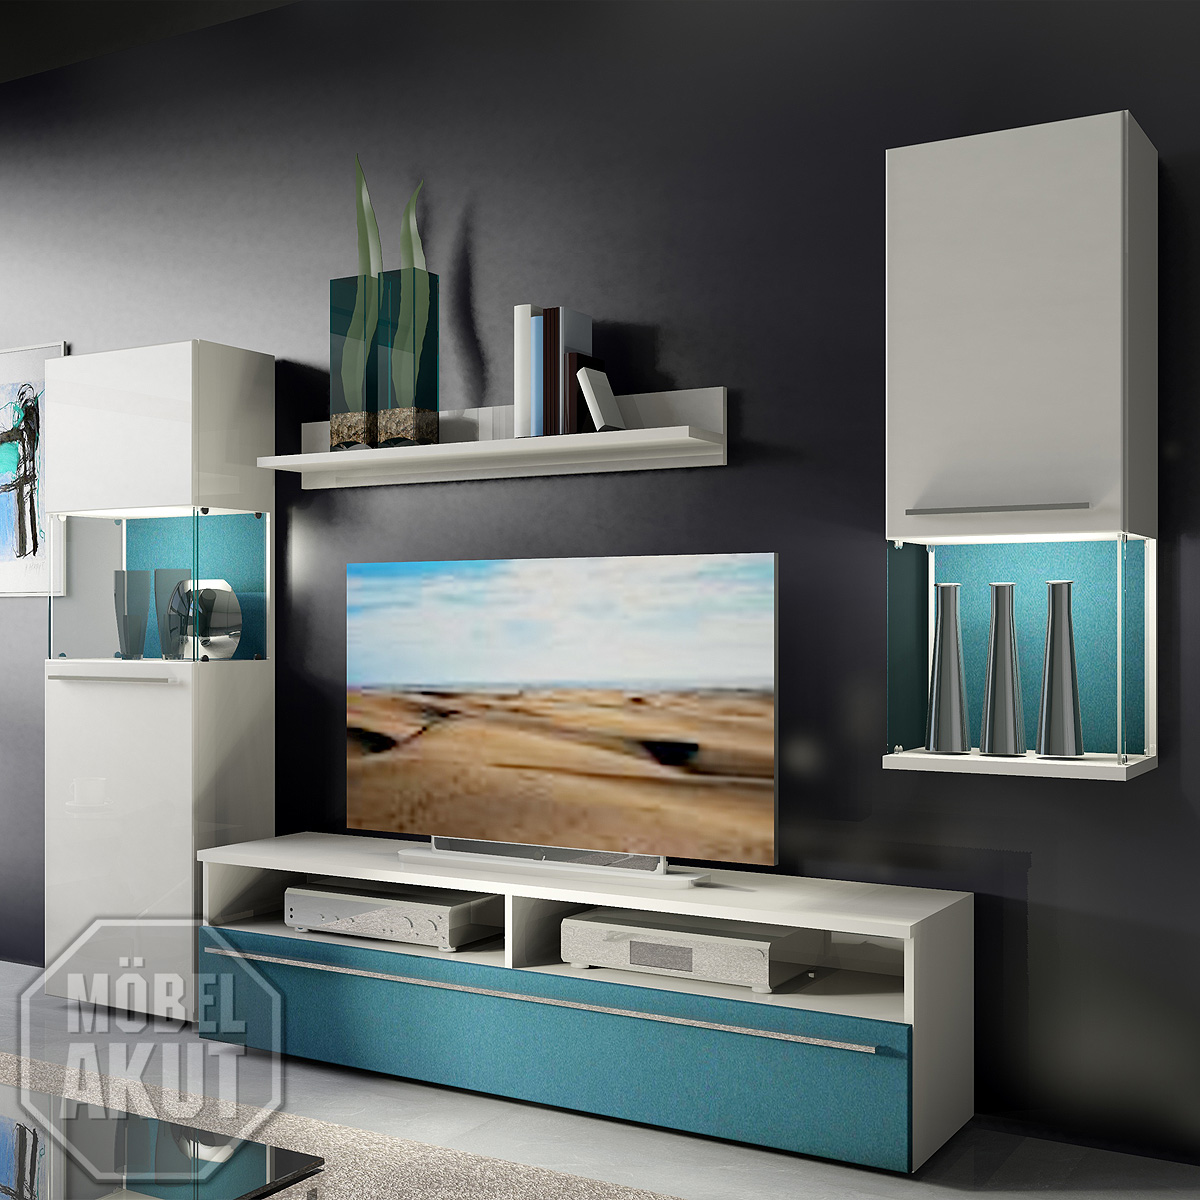 wohnwand 8 six pack anbauwand wohnzimmer in wei petrol blau neu ebay. Black Bedroom Furniture Sets. Home Design Ideas